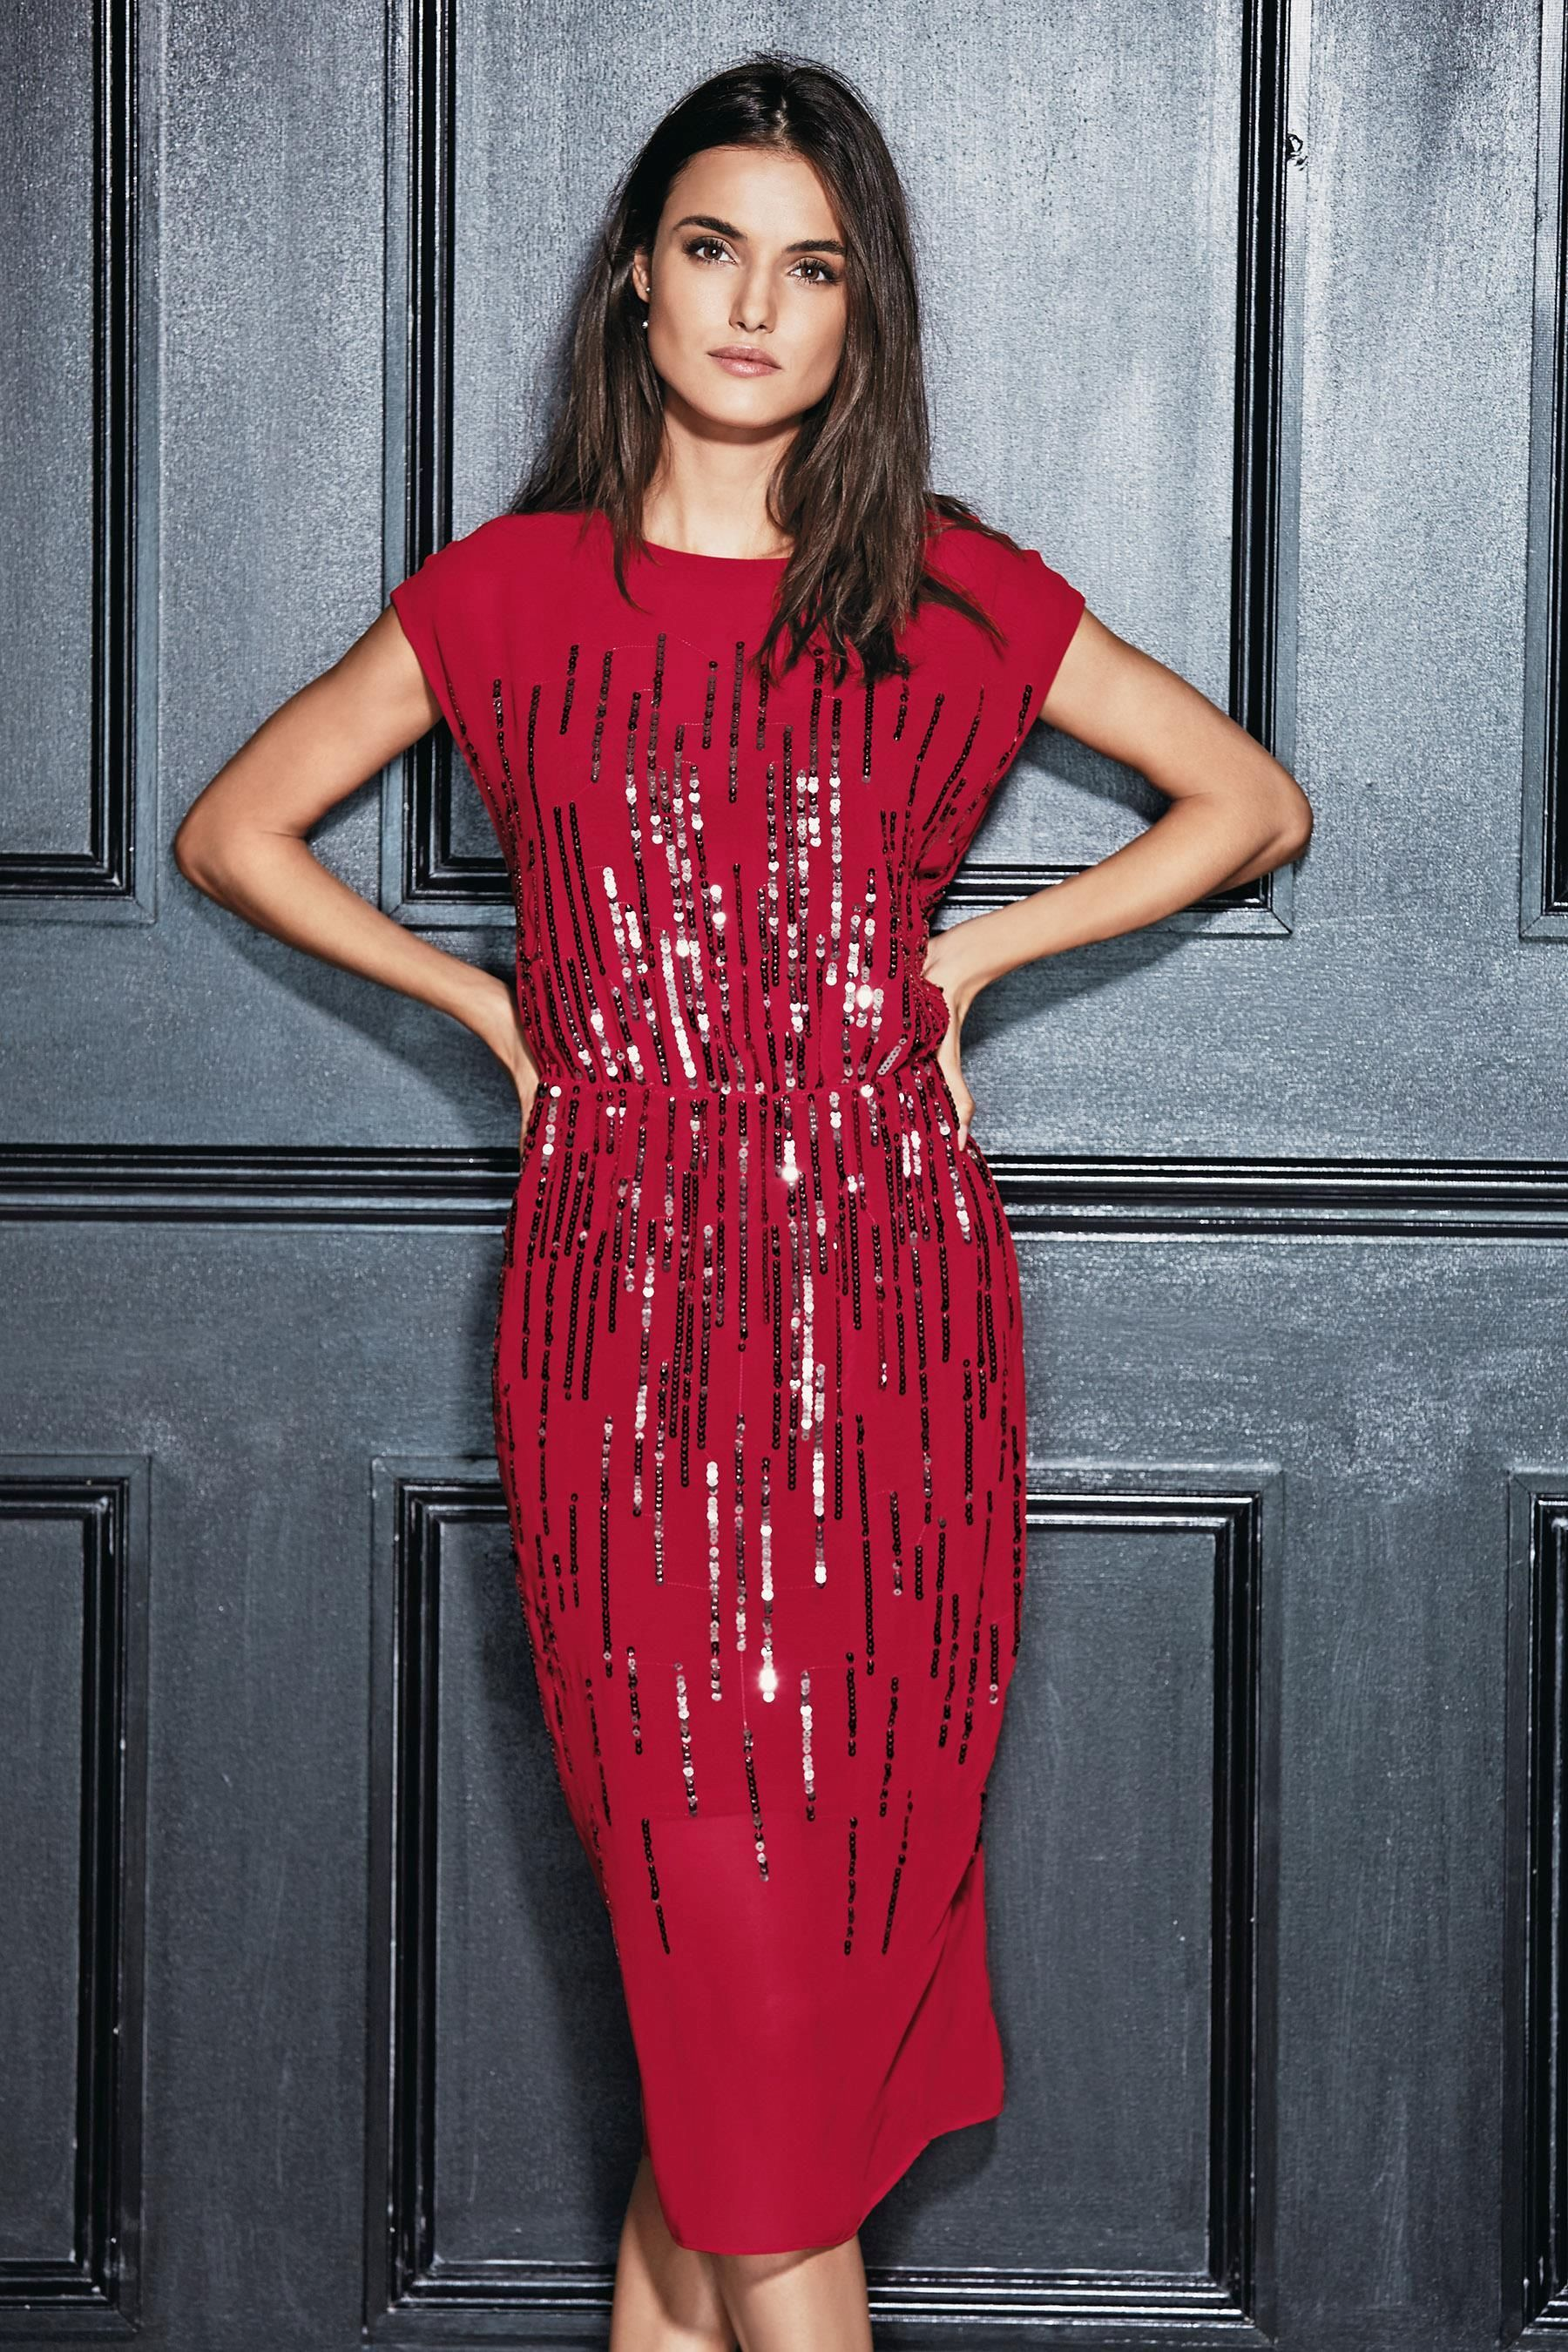 Black dress next - Buy Red Sequin Ombr Dress From The Next Uk Online Shop